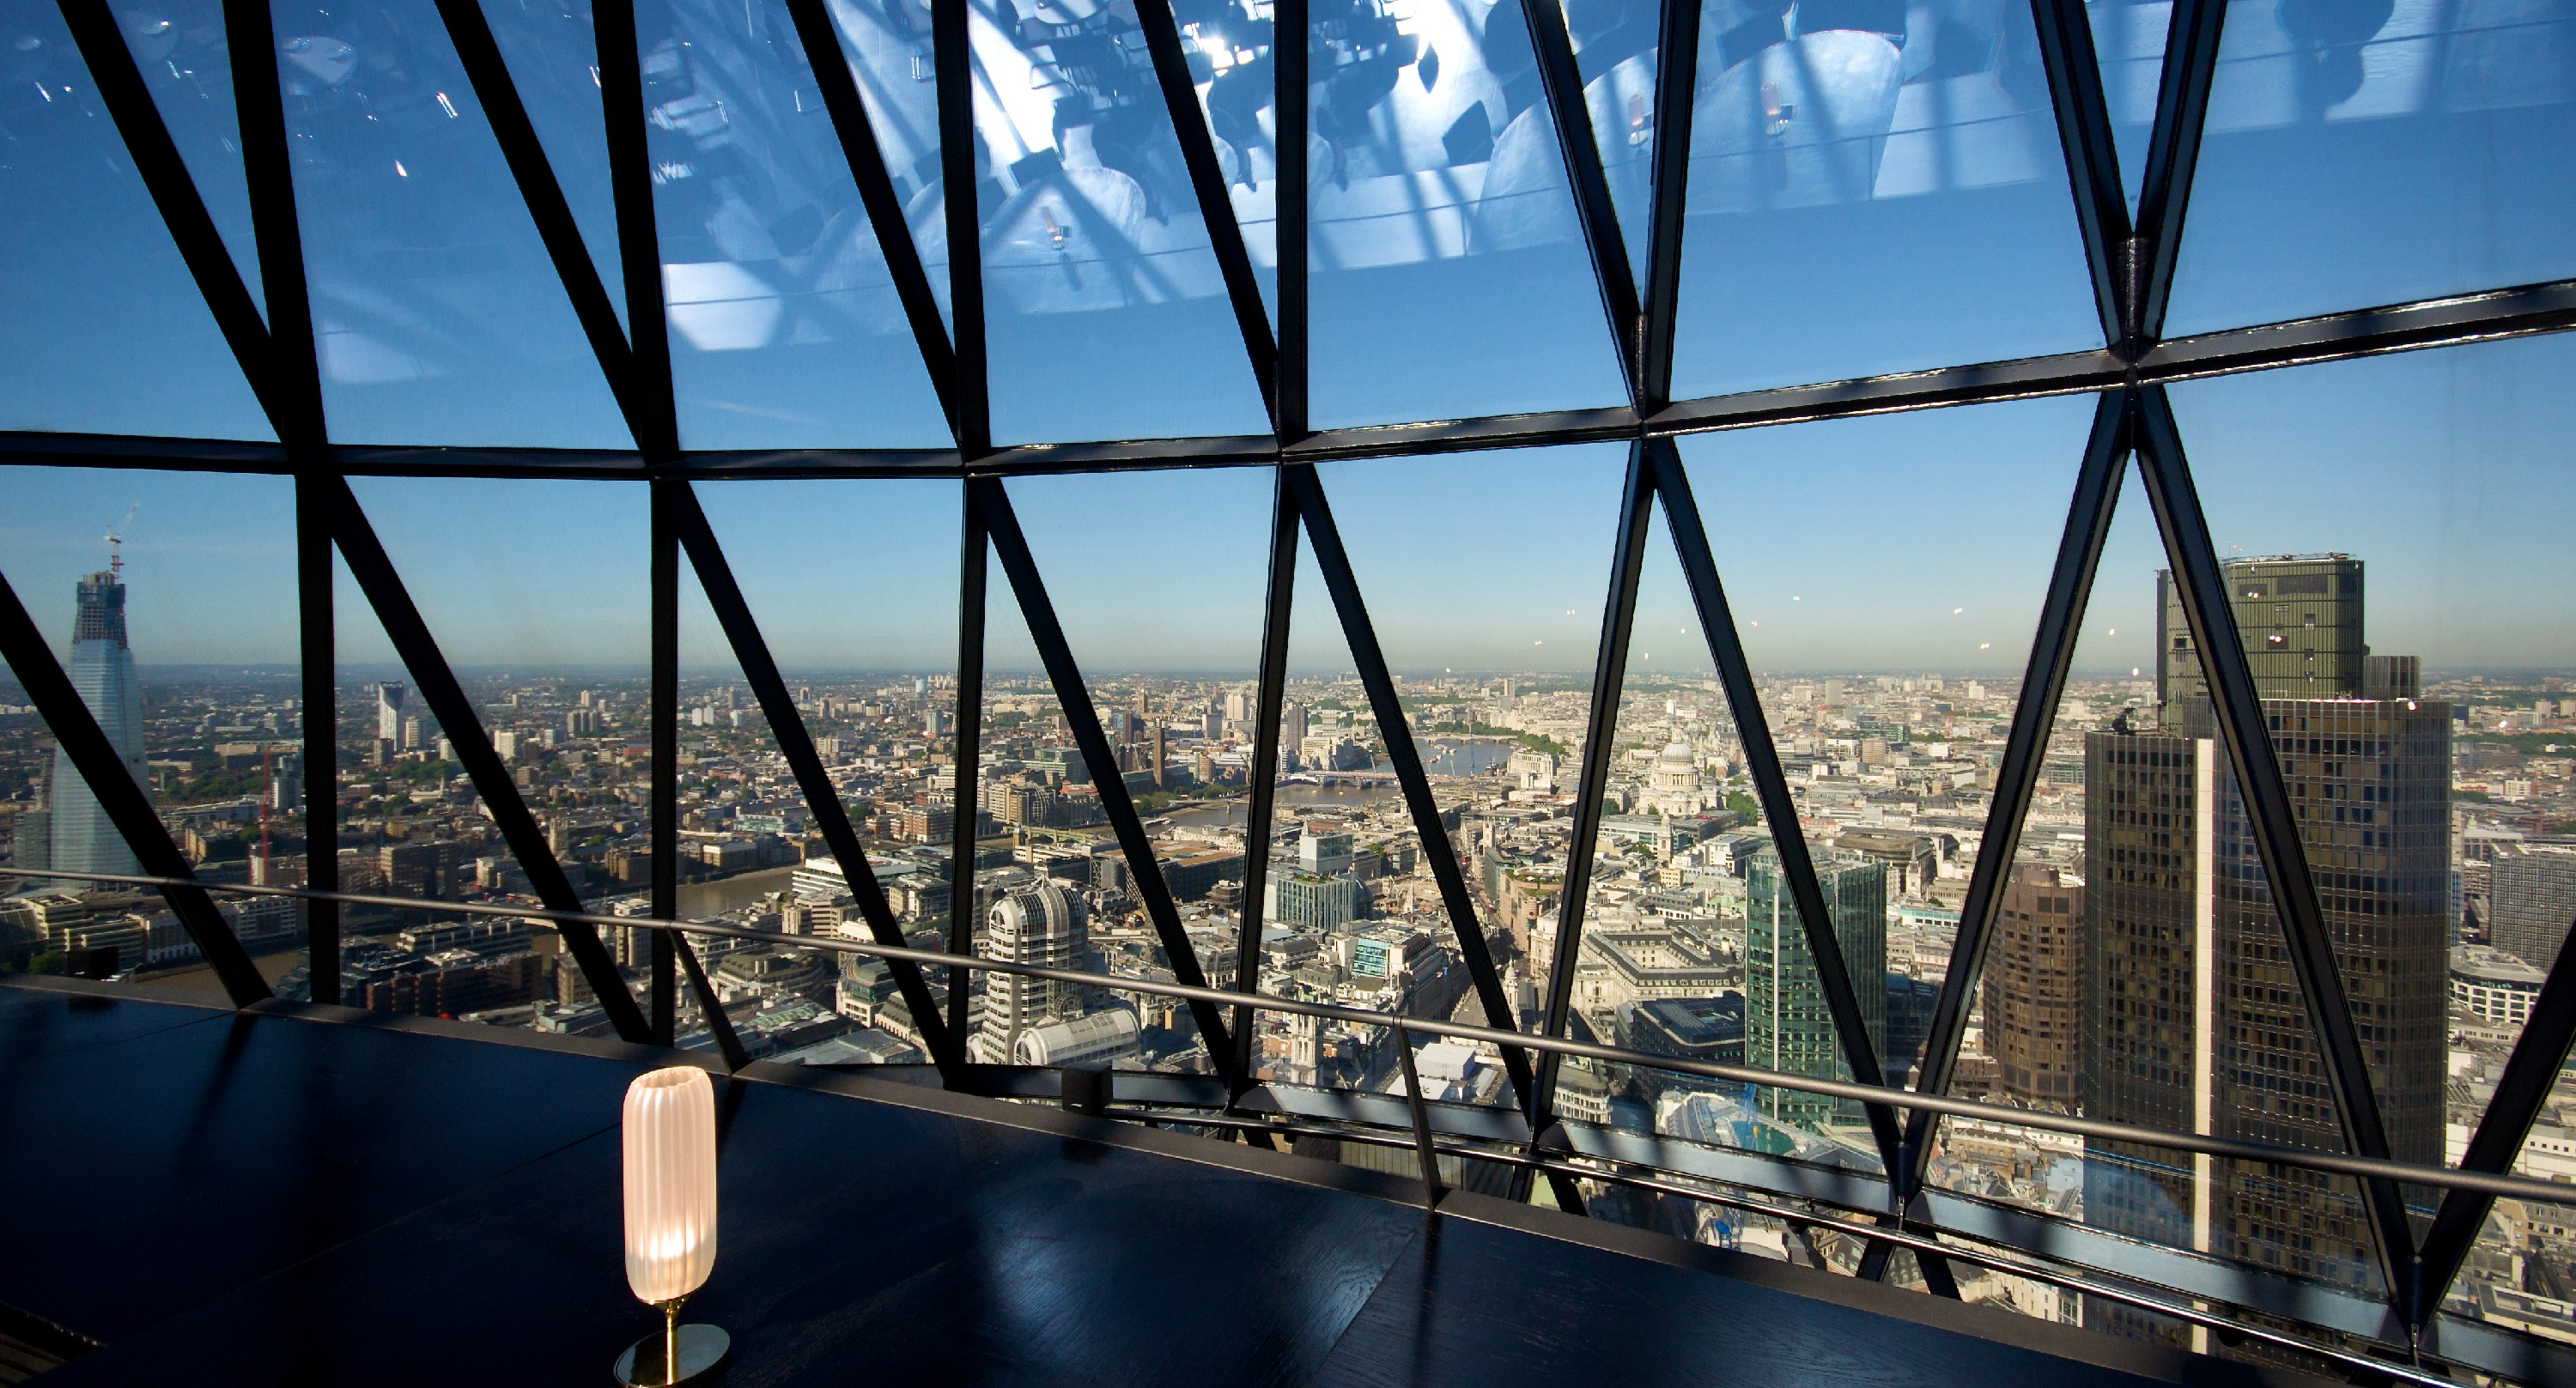 Sweet Sundays at the Gherkin